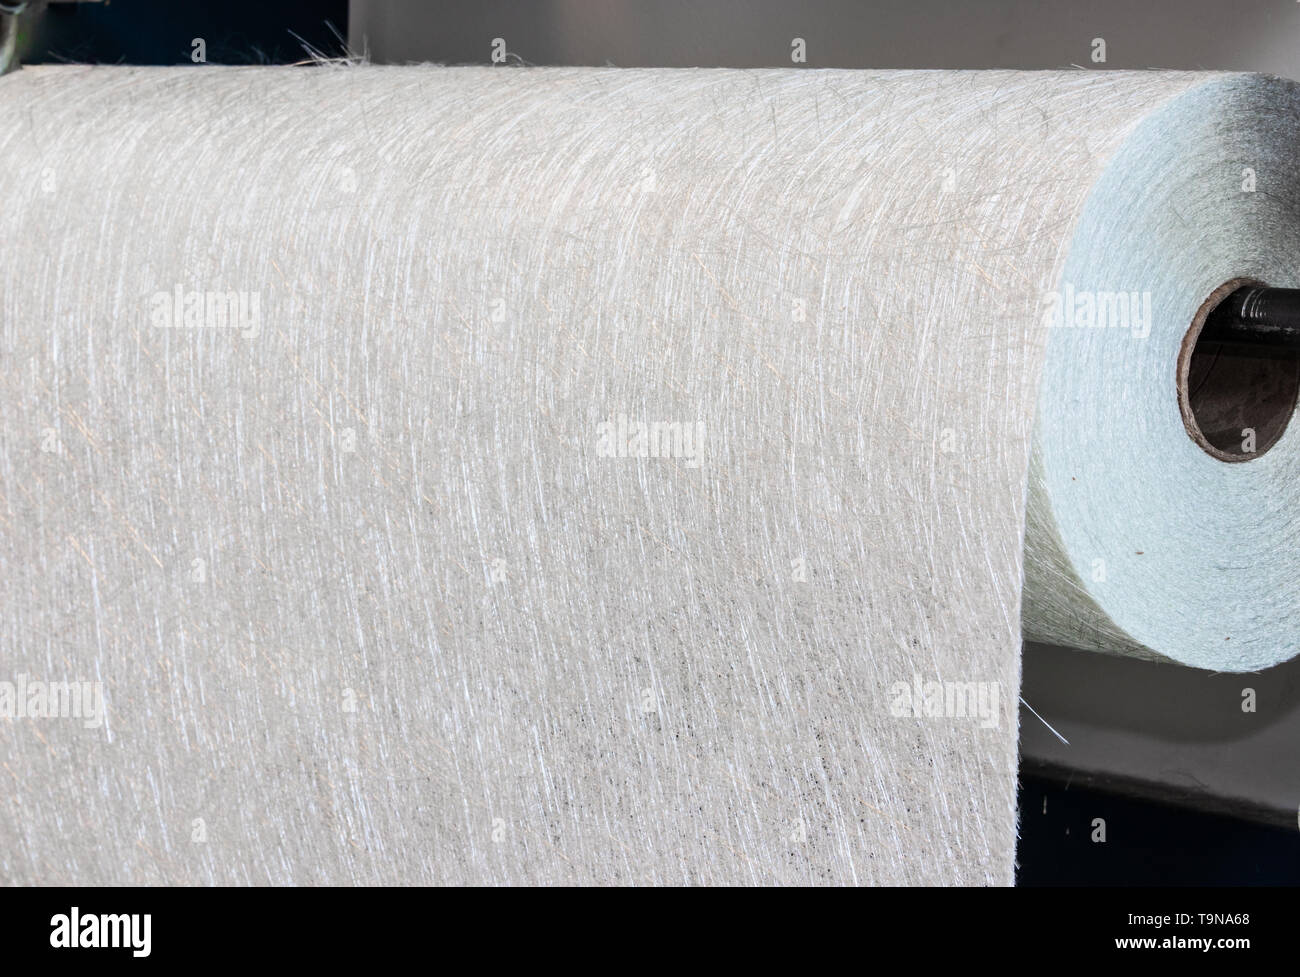 Fiberglass fabric composite roll material FMR Industry - Stock Image